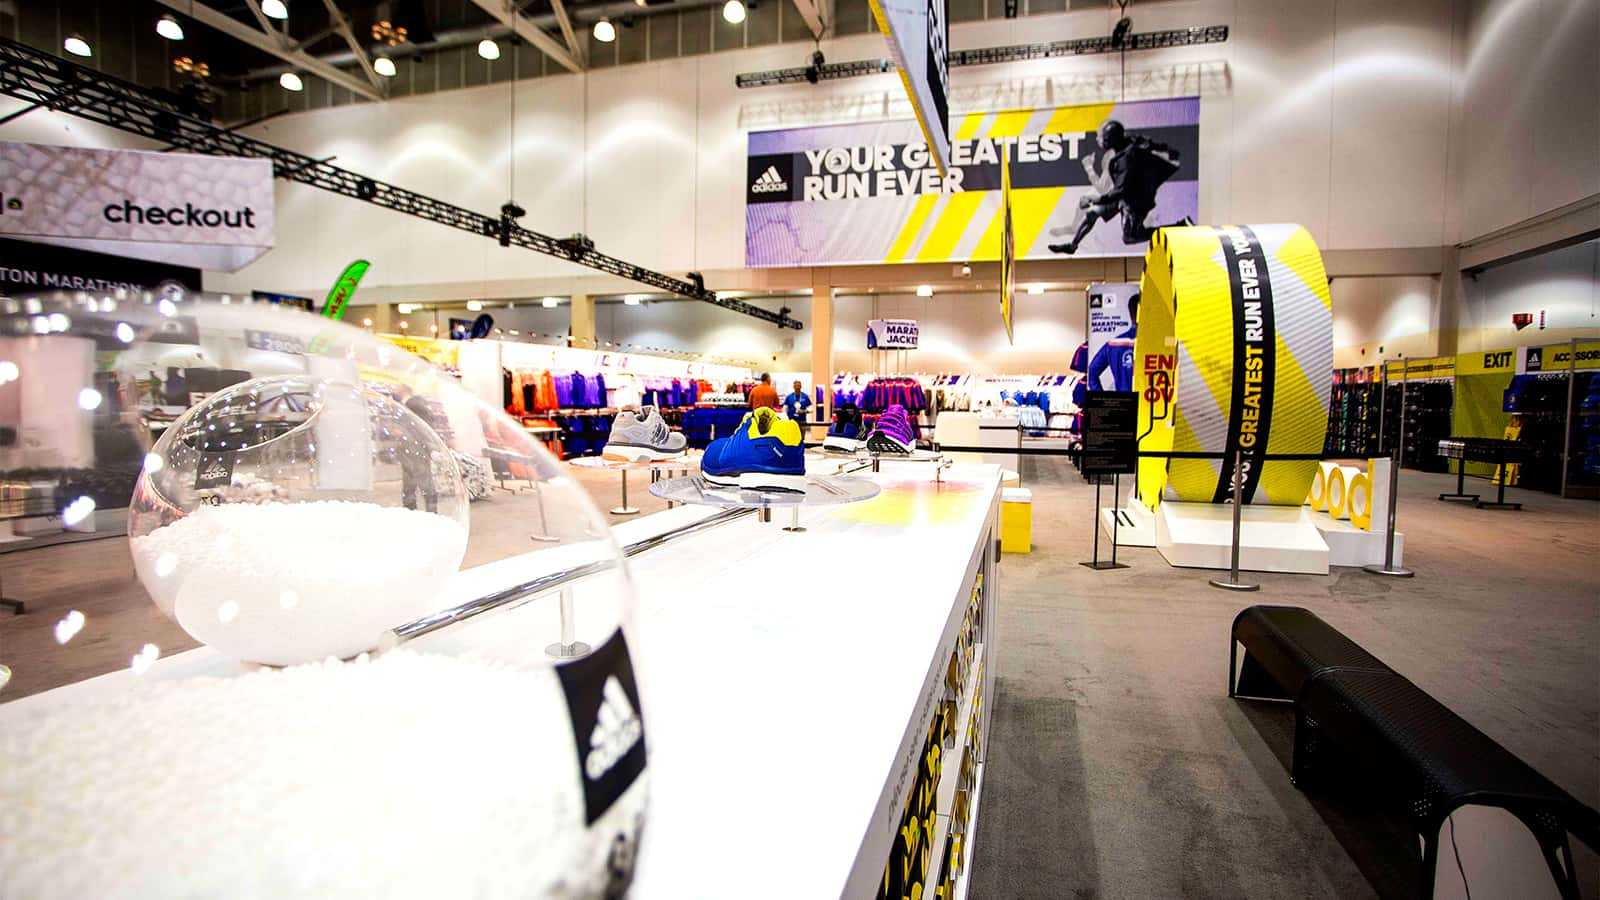 An eye level view of the full adidas Boston Marathon store 2015.